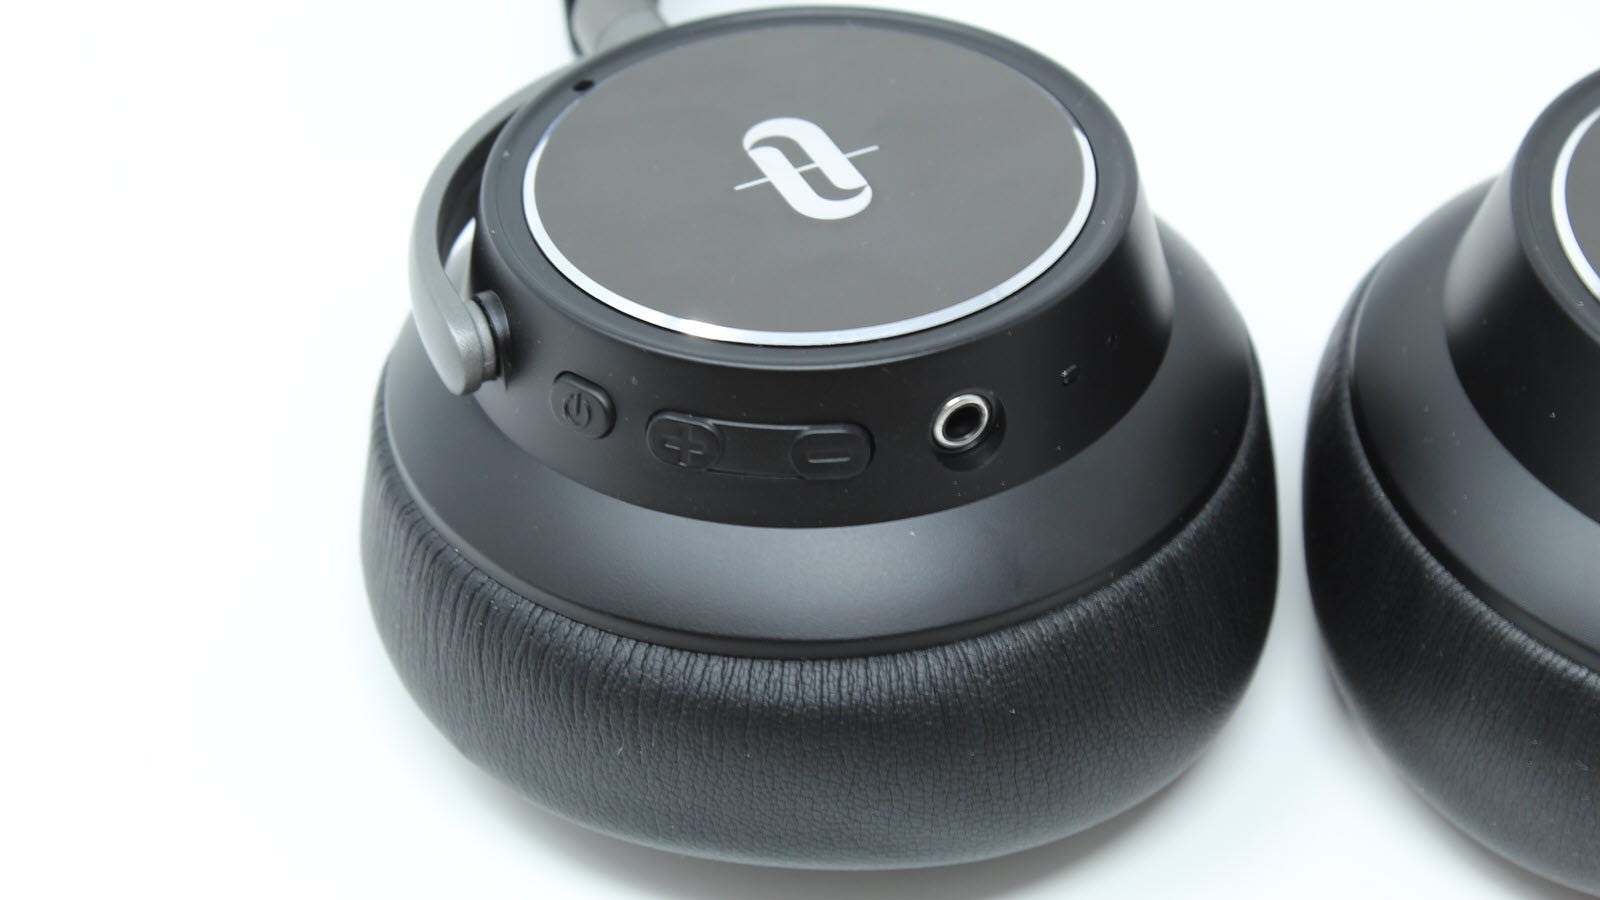 A closeup of the Headphones showing Power, volume up and down, and headphone jack.